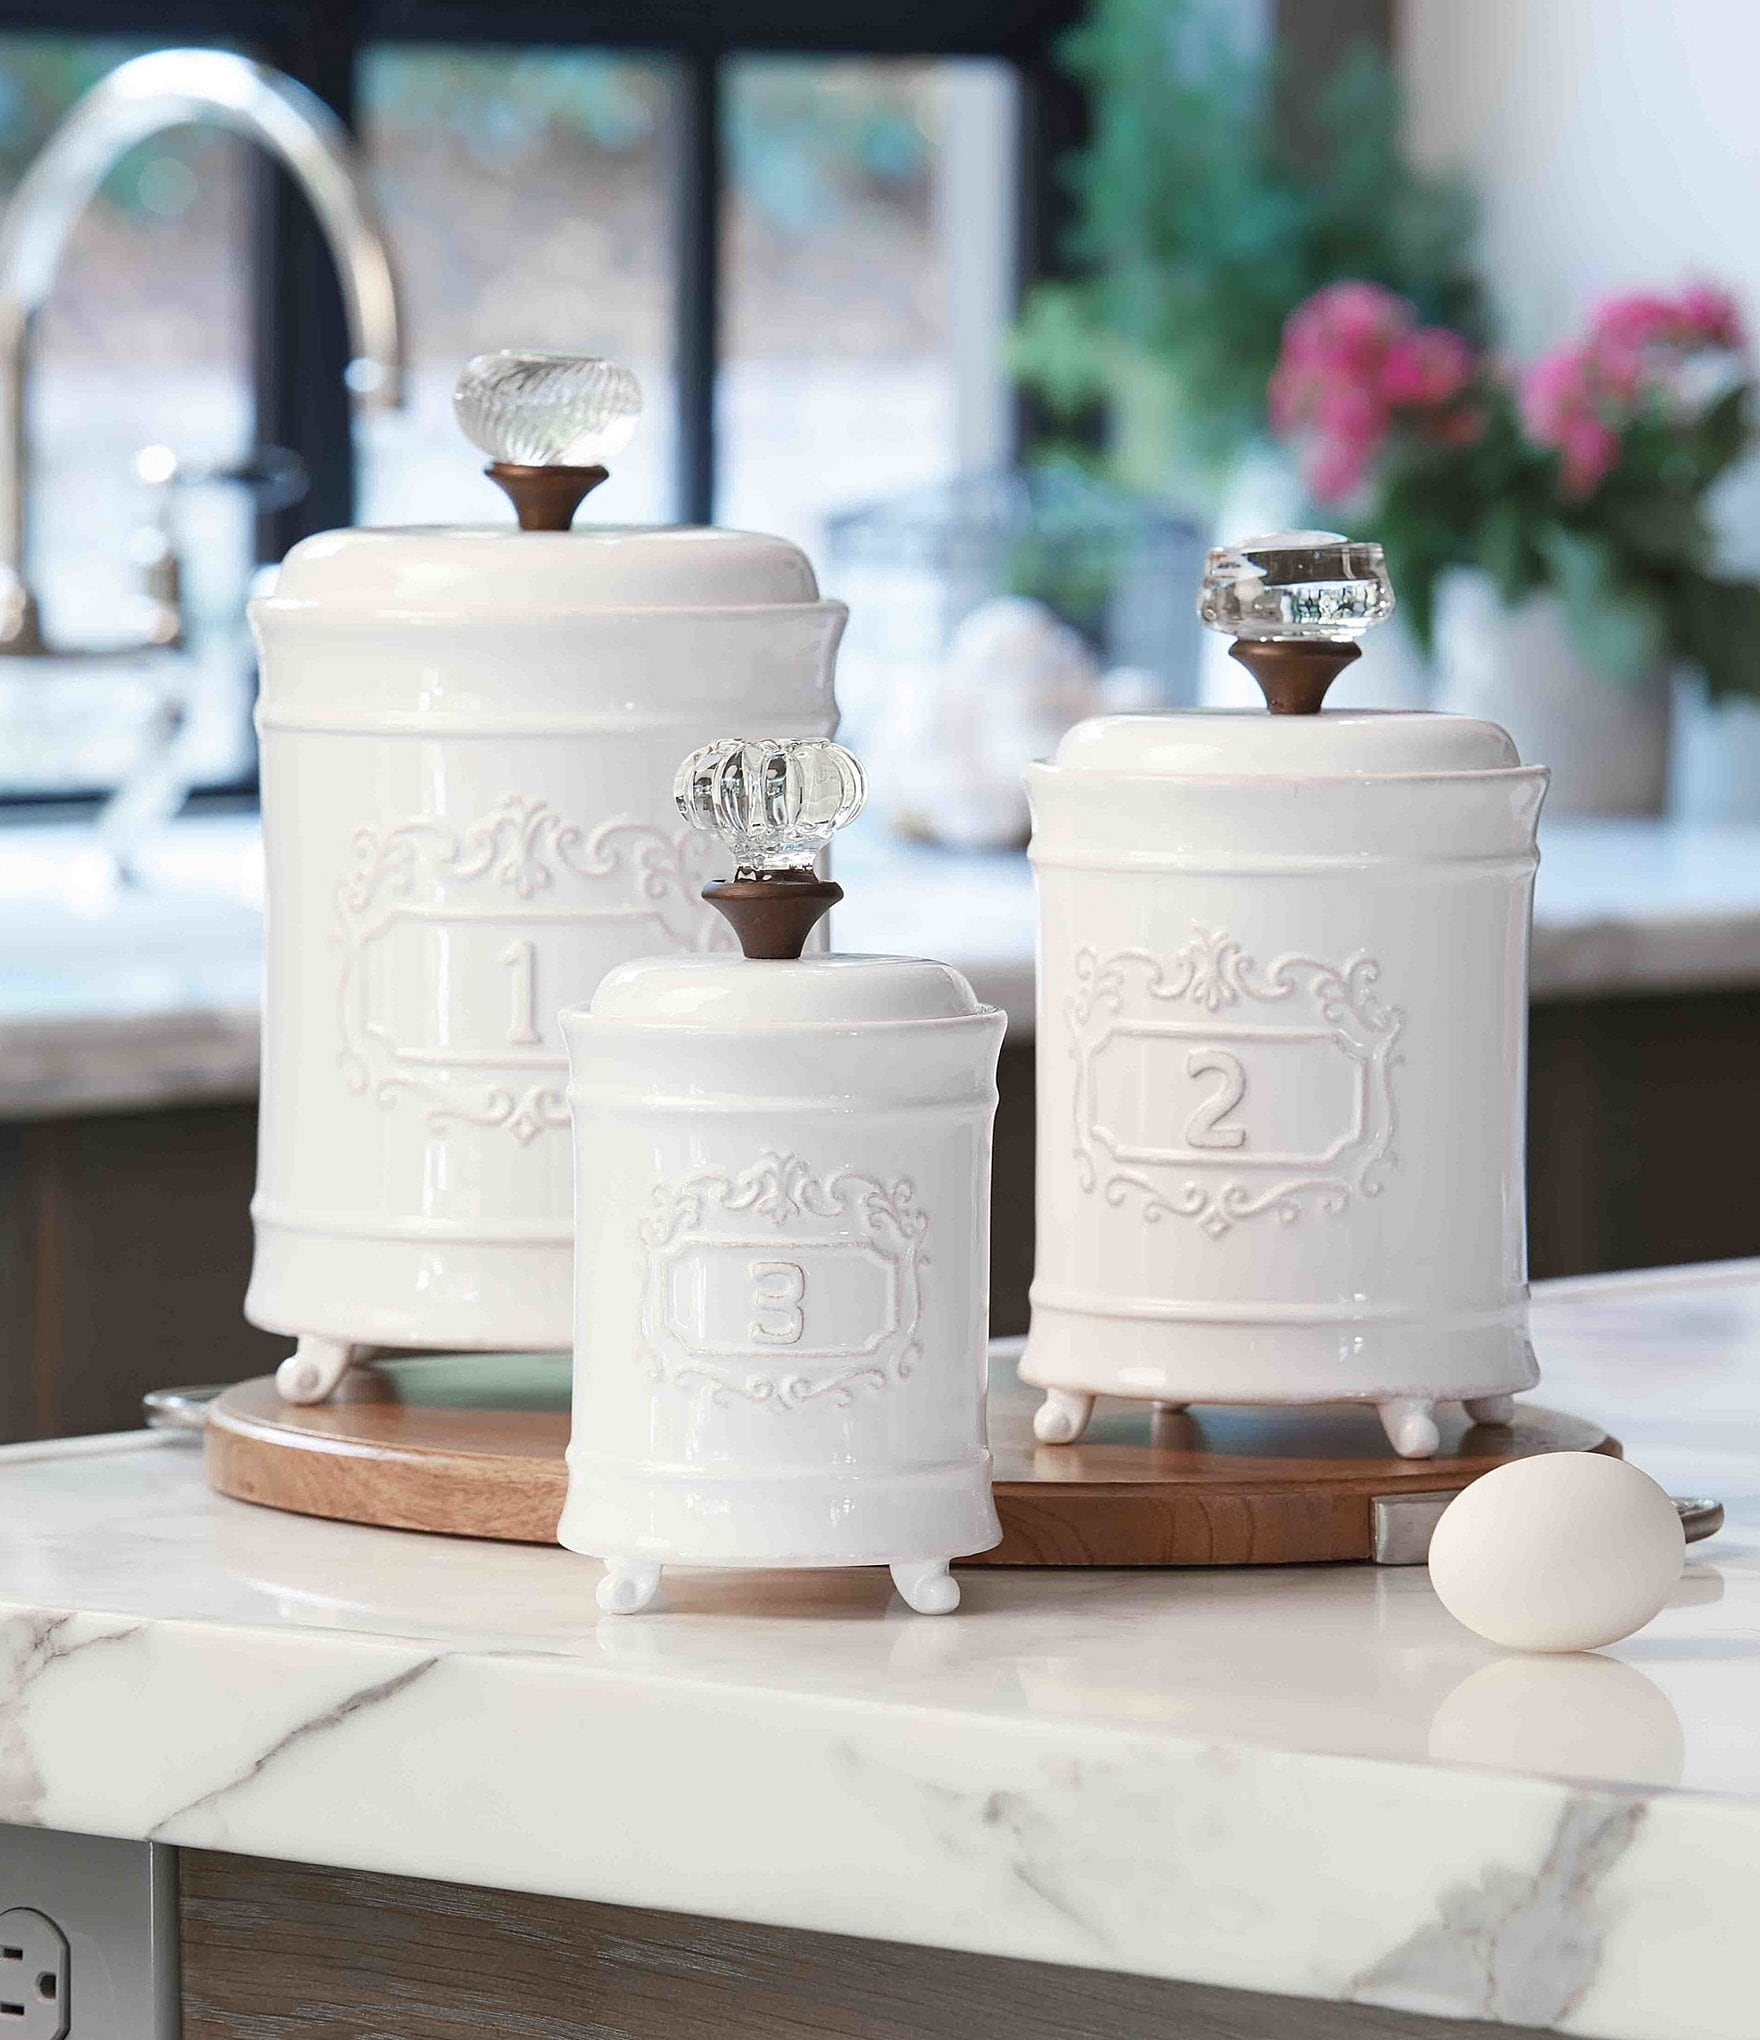 dillards kitchen canisters mud pie farmhouse circa vintage doorknob canisters set of 3 dillards 3984